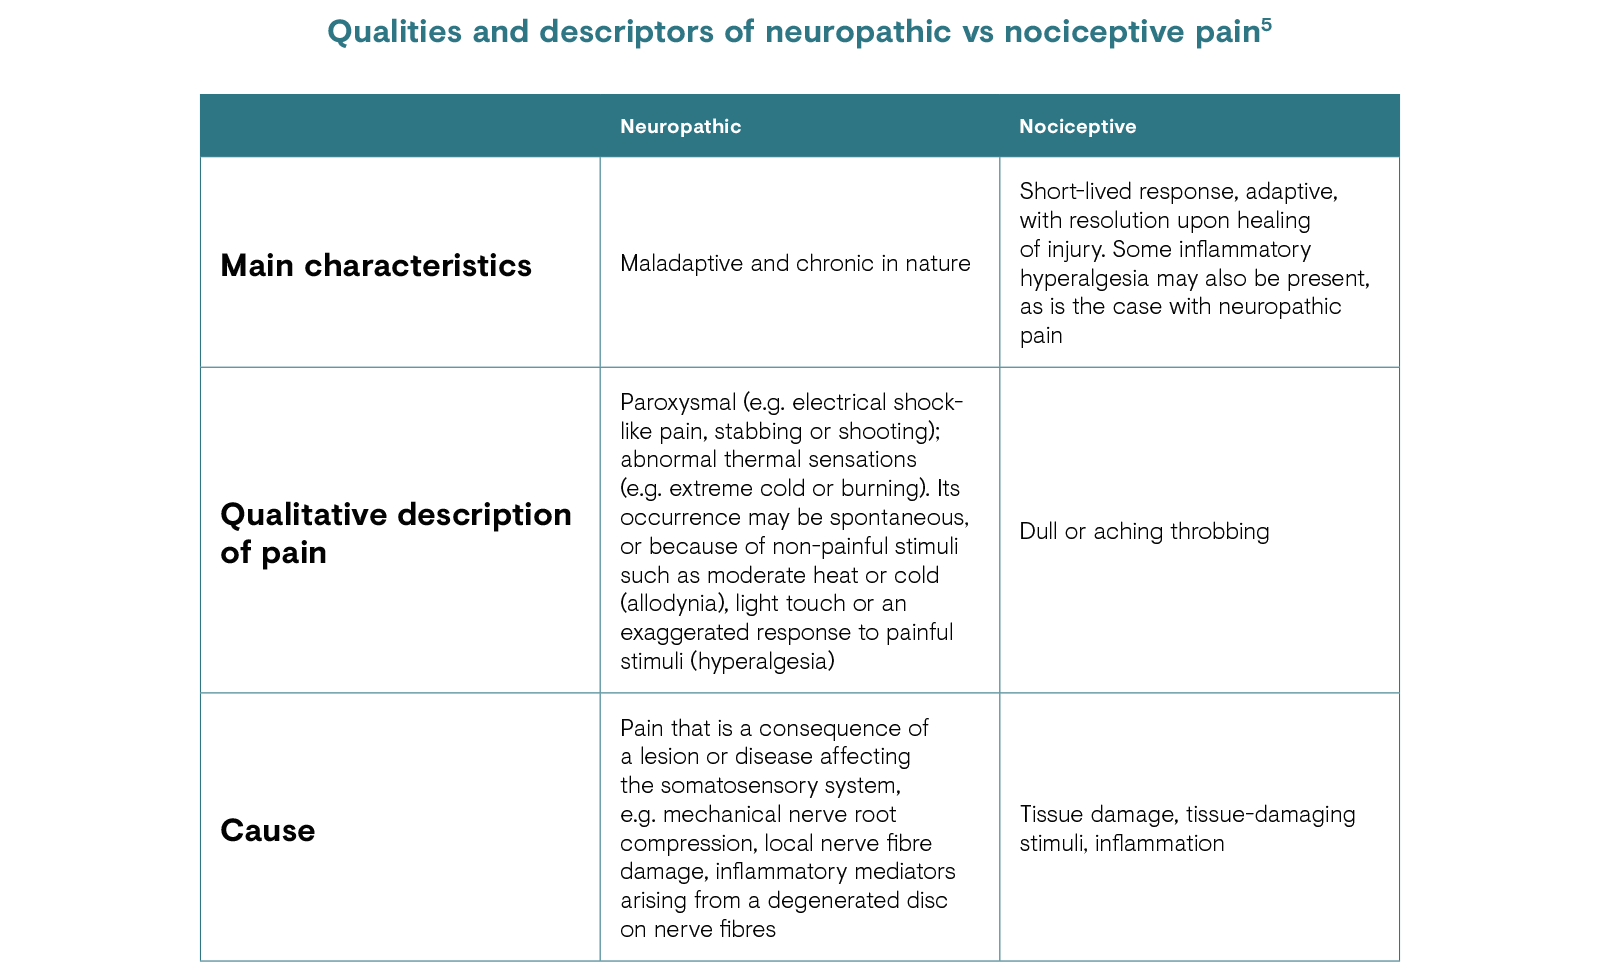 Qualities and descriptors of neuropathic vs nociceptive pain